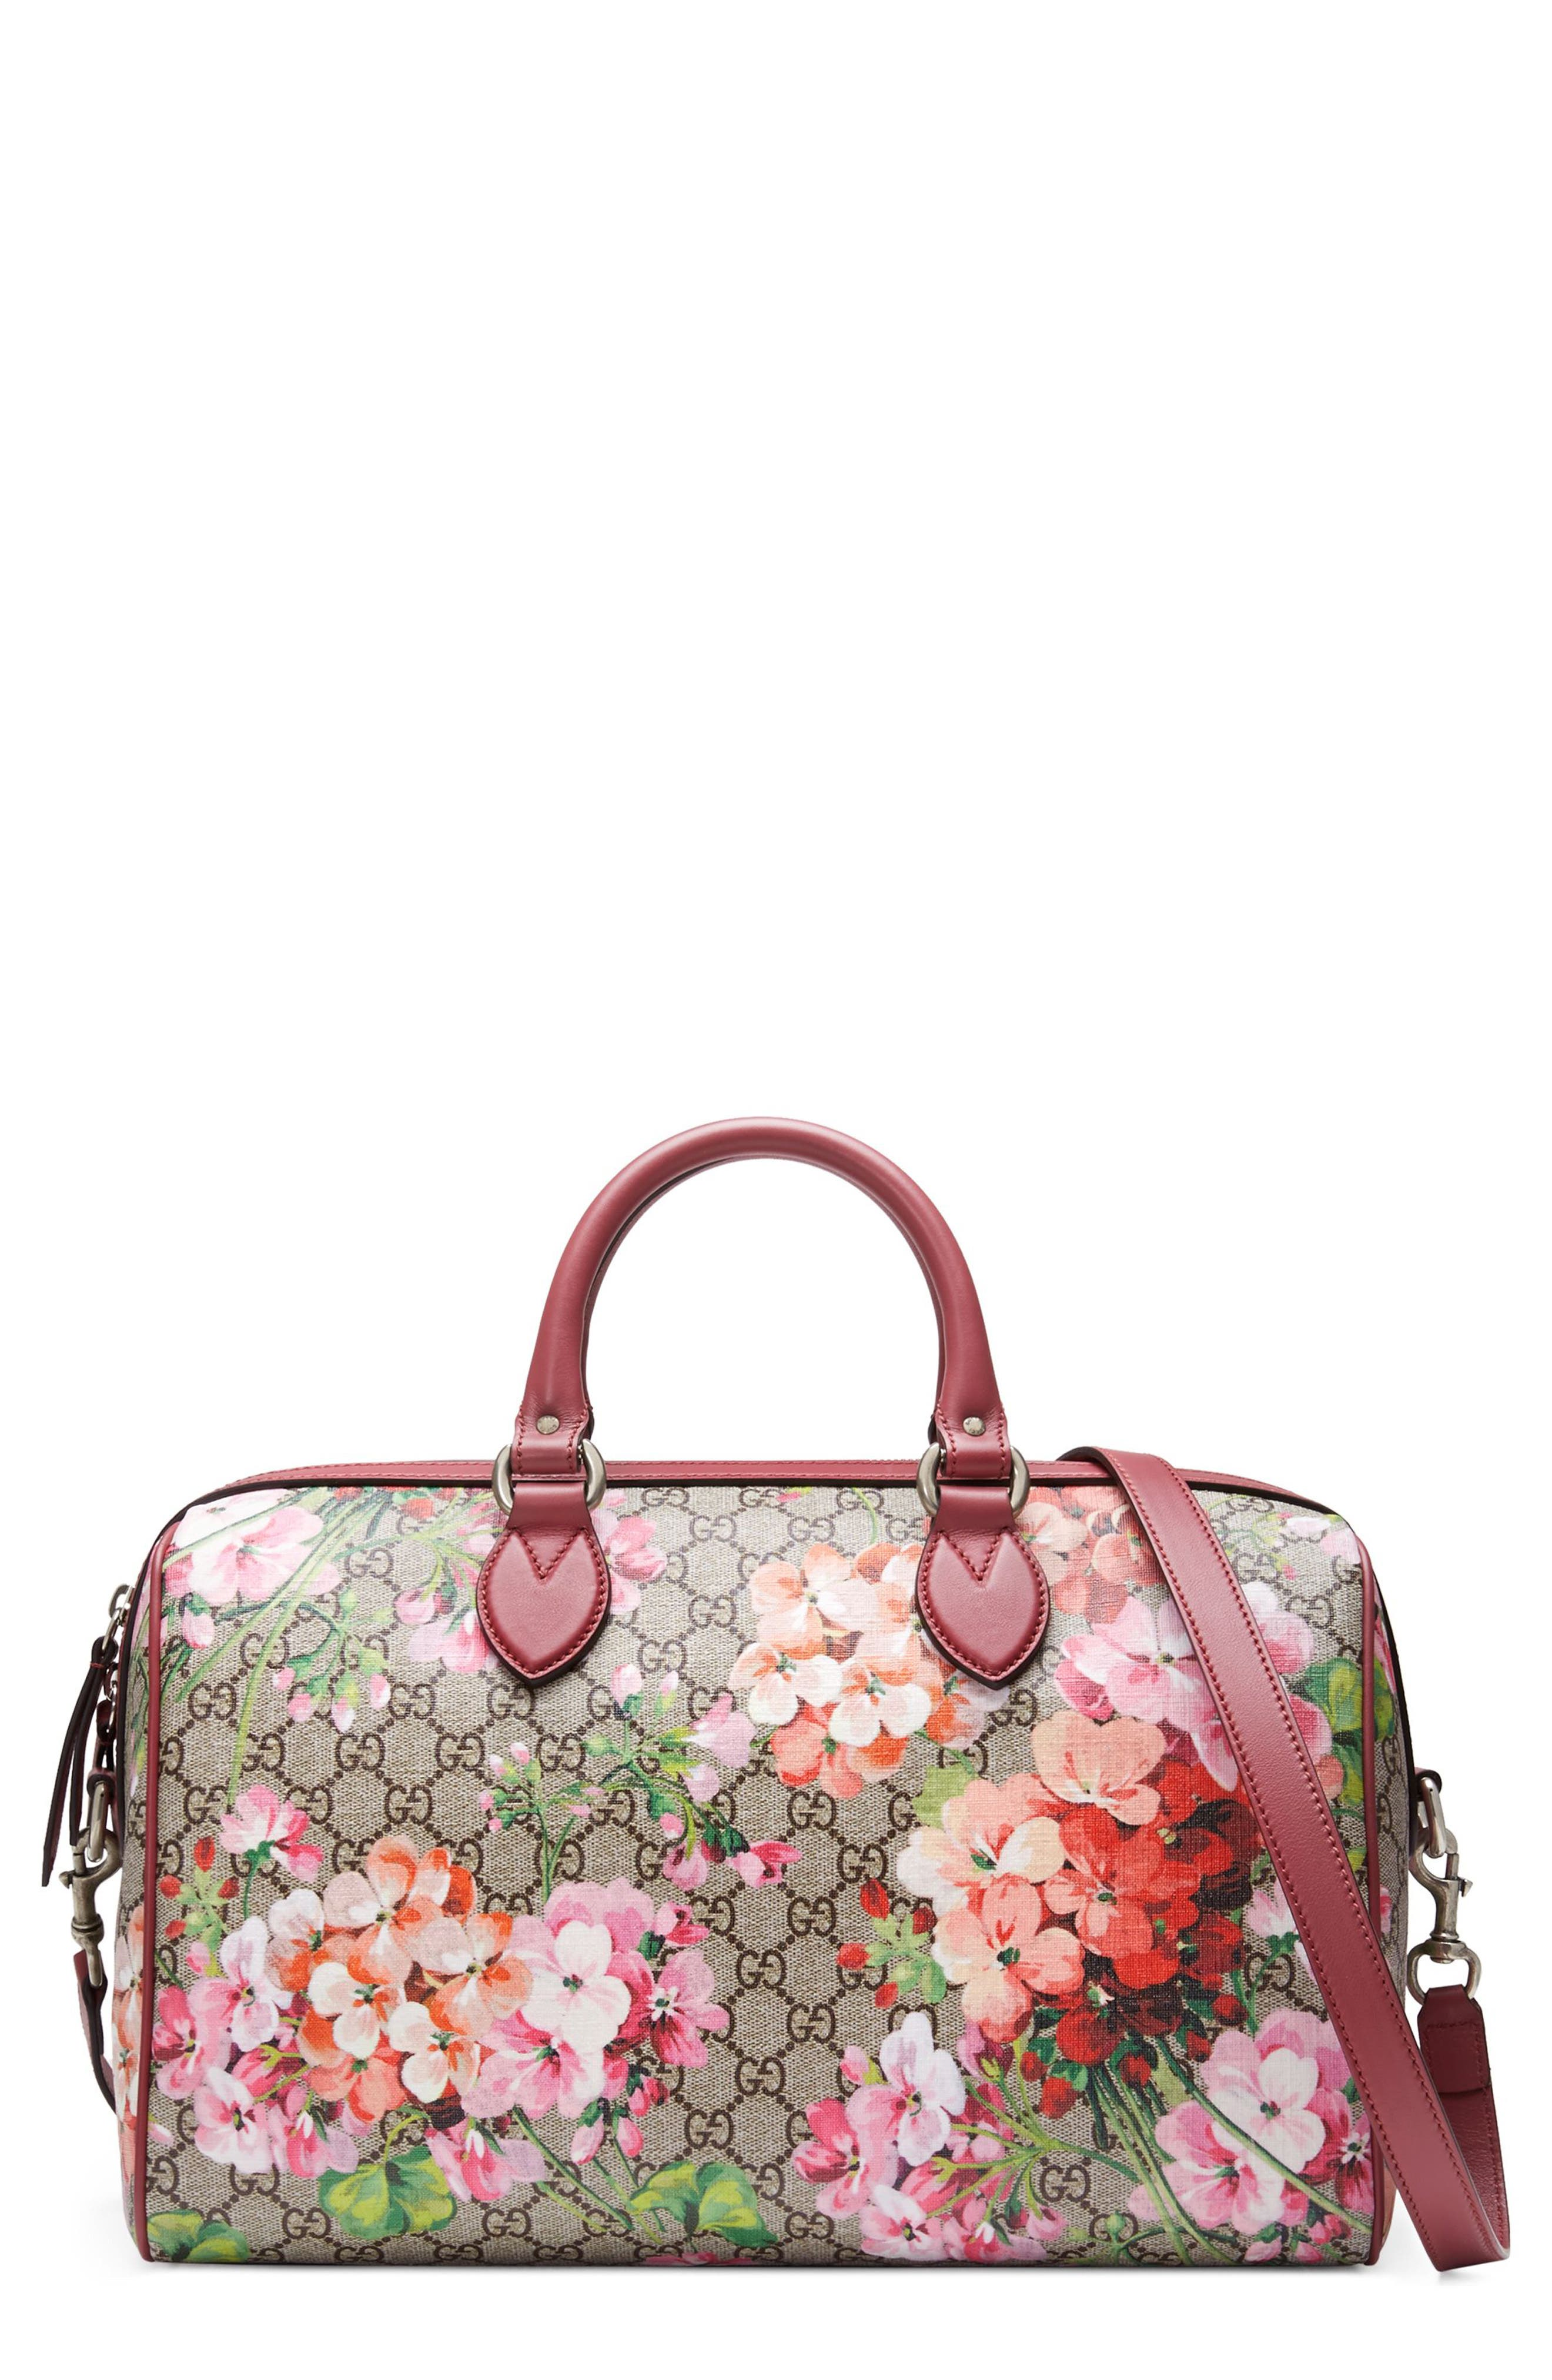 Alternate Image 1 Selected - Gucci Medium Blooms GG Supreme Top Handle Canvas Bag